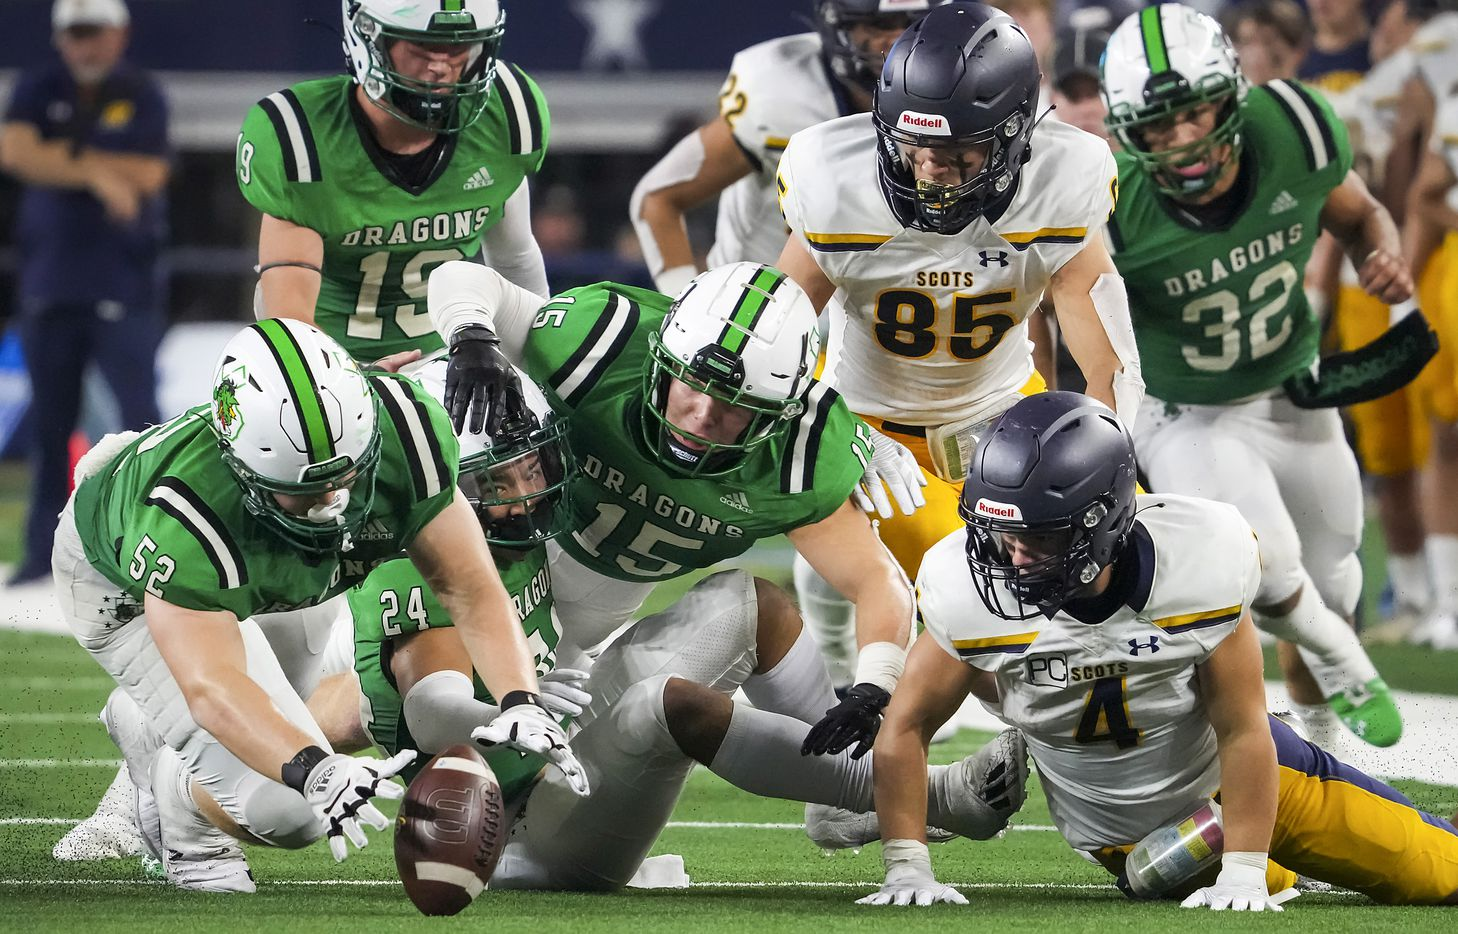 Southlake Carroll defensive lineman Cade Parks (52) recovers a fumble by Highland Park running back Christian Reeves (4) that was caused by a hit from Carroll defensive back Max Reyes (24) during the second half of a high school football game at AT&T Stadium on Thursday, Aug. 26, 2021, in Arlington.